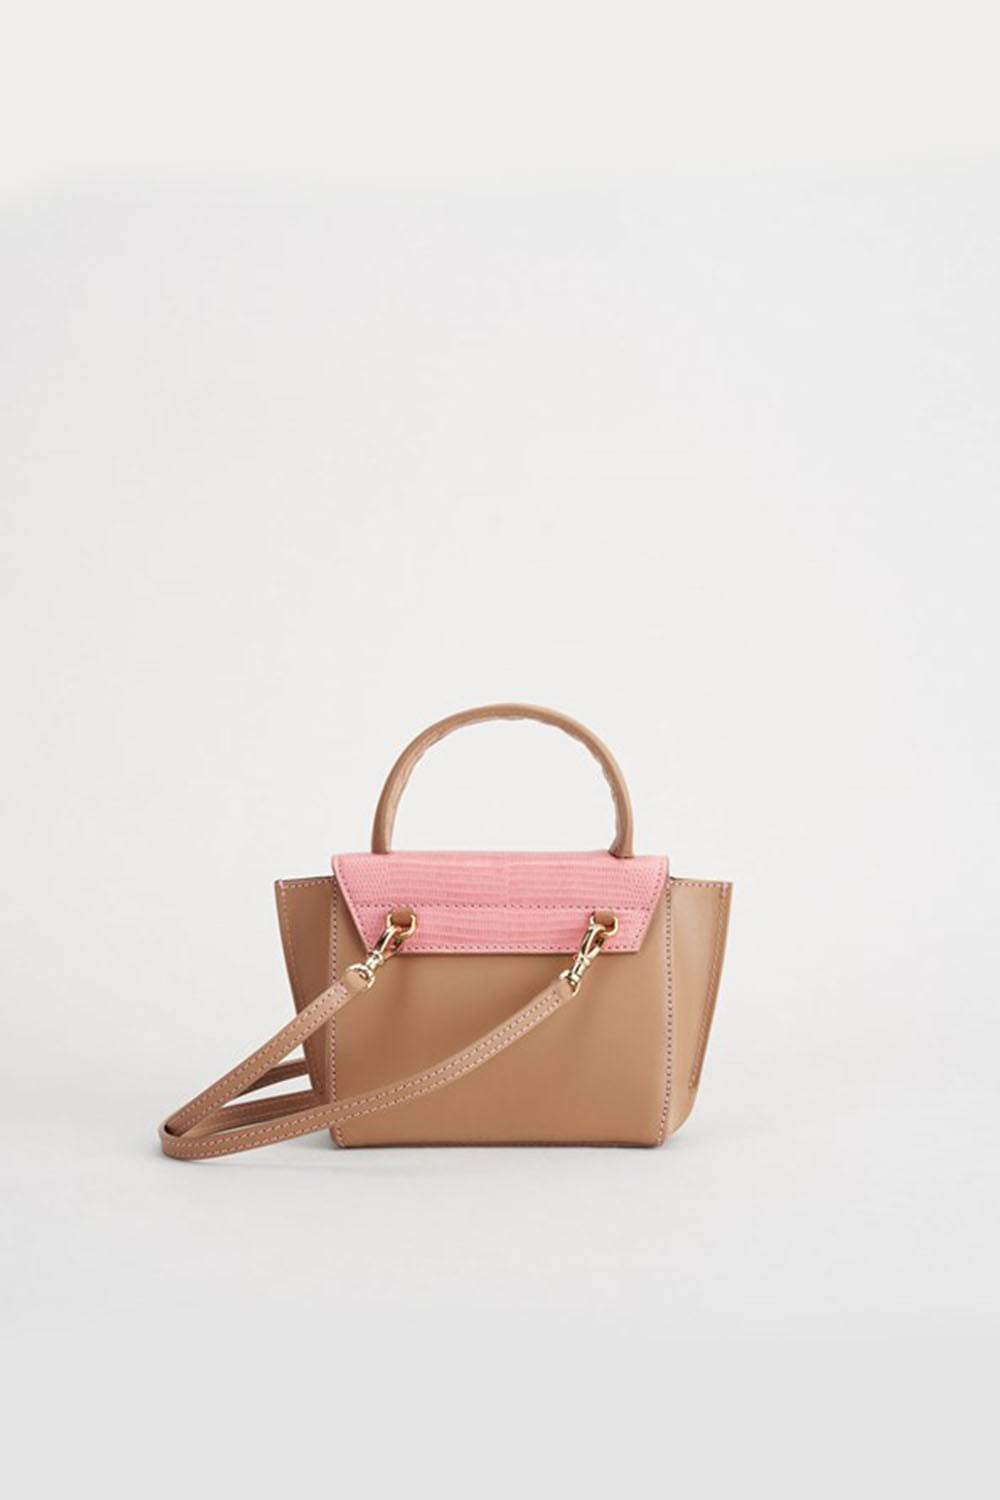 ATP - MONTALCANO CANDY PINK/ALMOND BAG